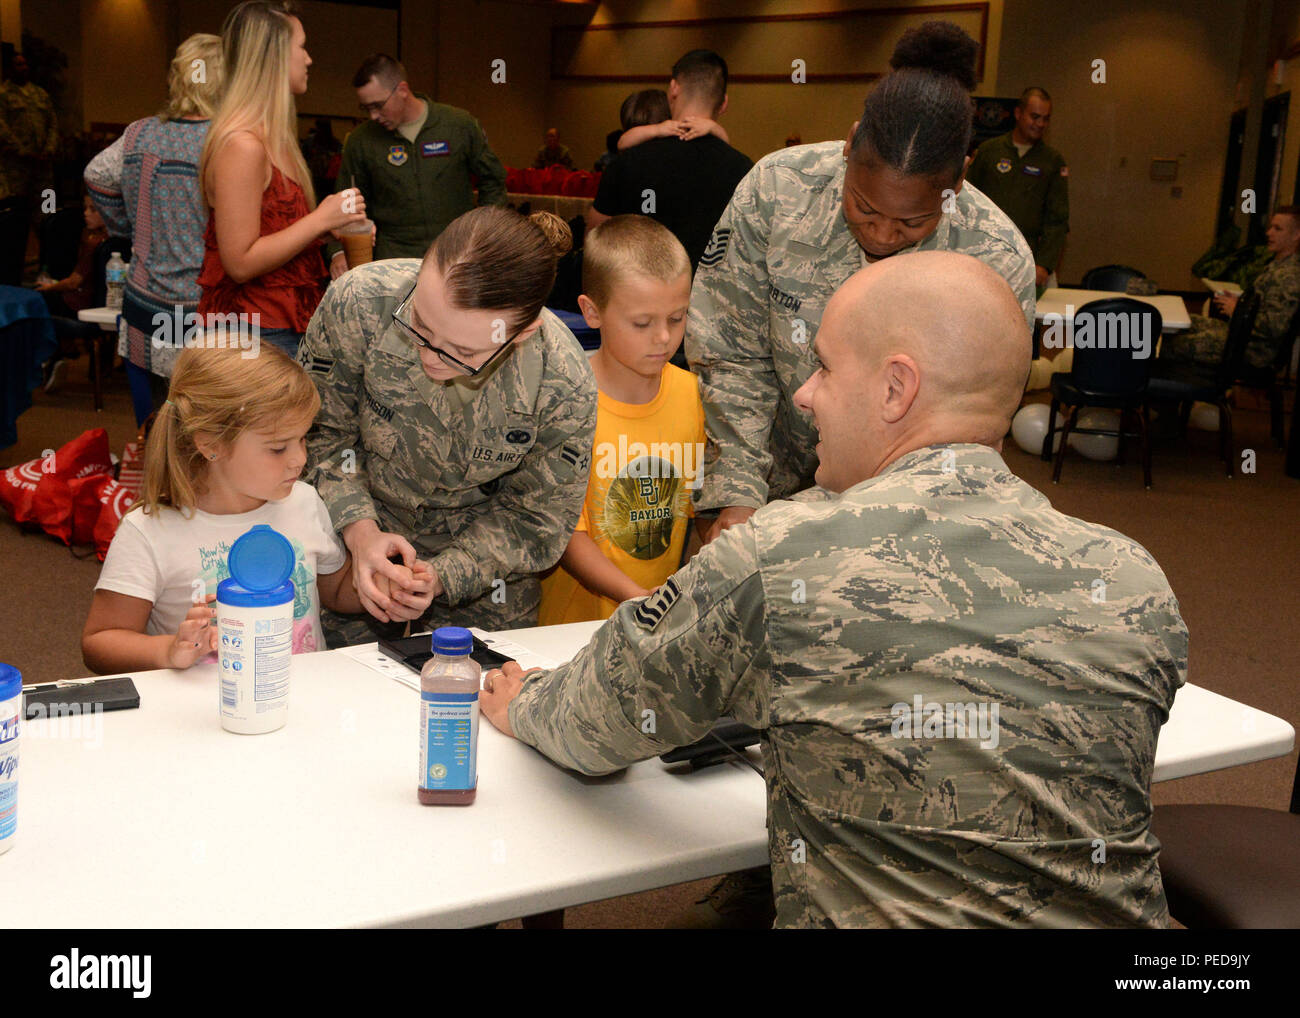 U.S. Air Force Tech. Sgt. Joshua Leach, Tech. Sgt. Kristy Horton, and Airman 1st Class Allie Harrison, 97th Security Forces Squadron members, fingerprint children during Operation Deploying Family at the Freedom Community Center, Aug. 5, 2015. Once finalized, the identification cards were provided to the children's parents for safe keeping. (U.S. Air Force photo by Airman 1st Class Megan E. Acs/Released) - Stock Image